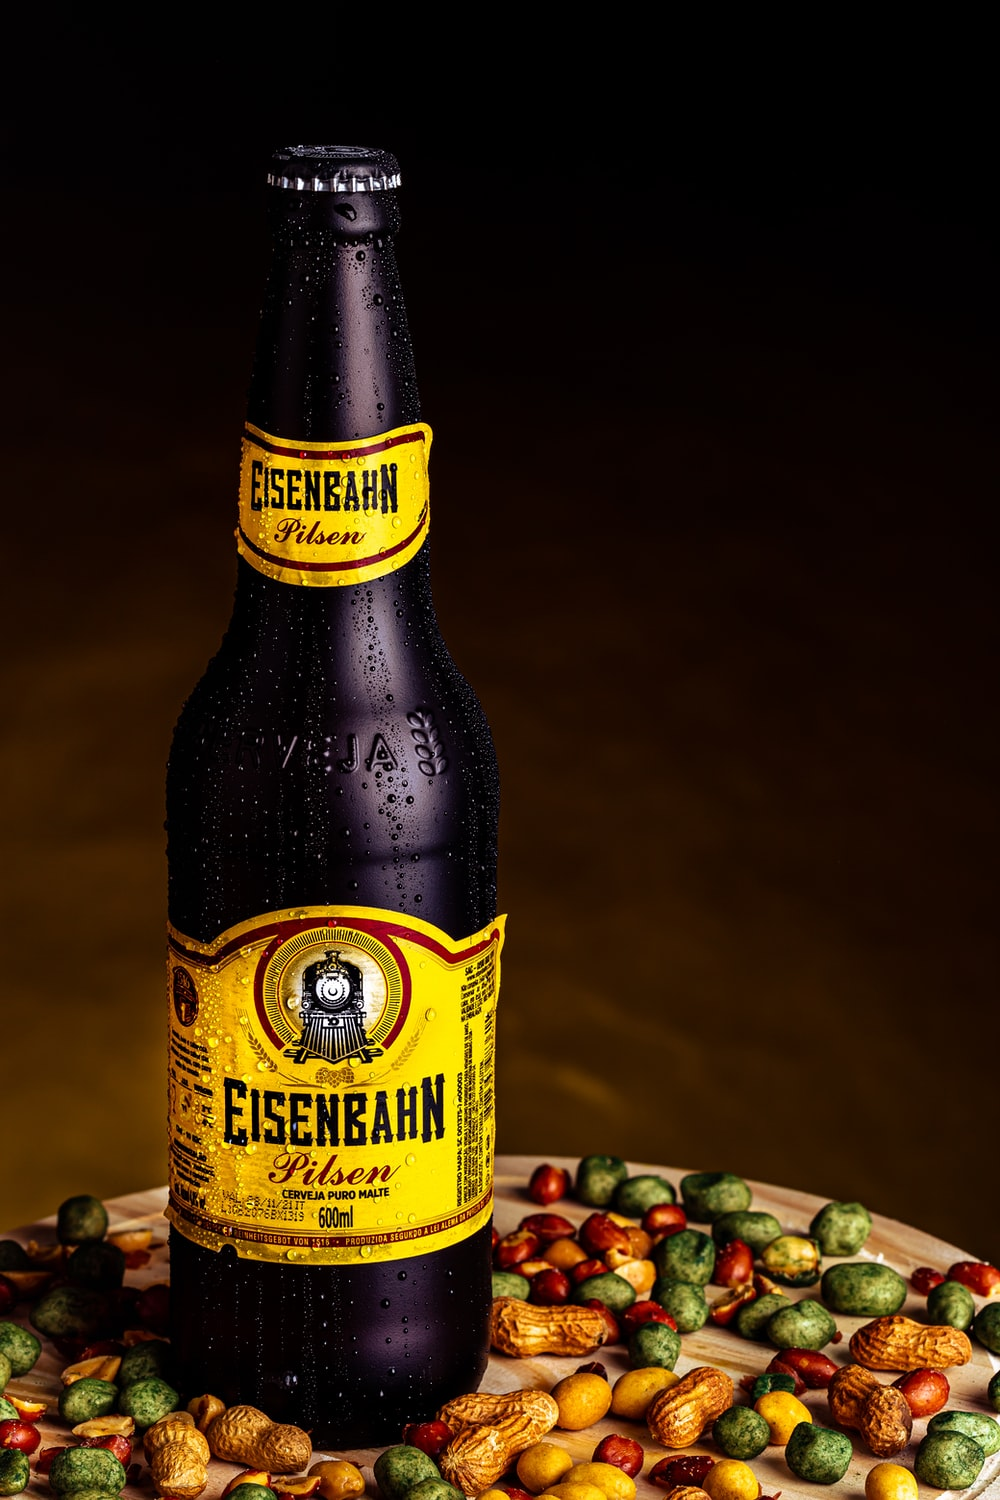 yellow labeled bottle on brown wooden table